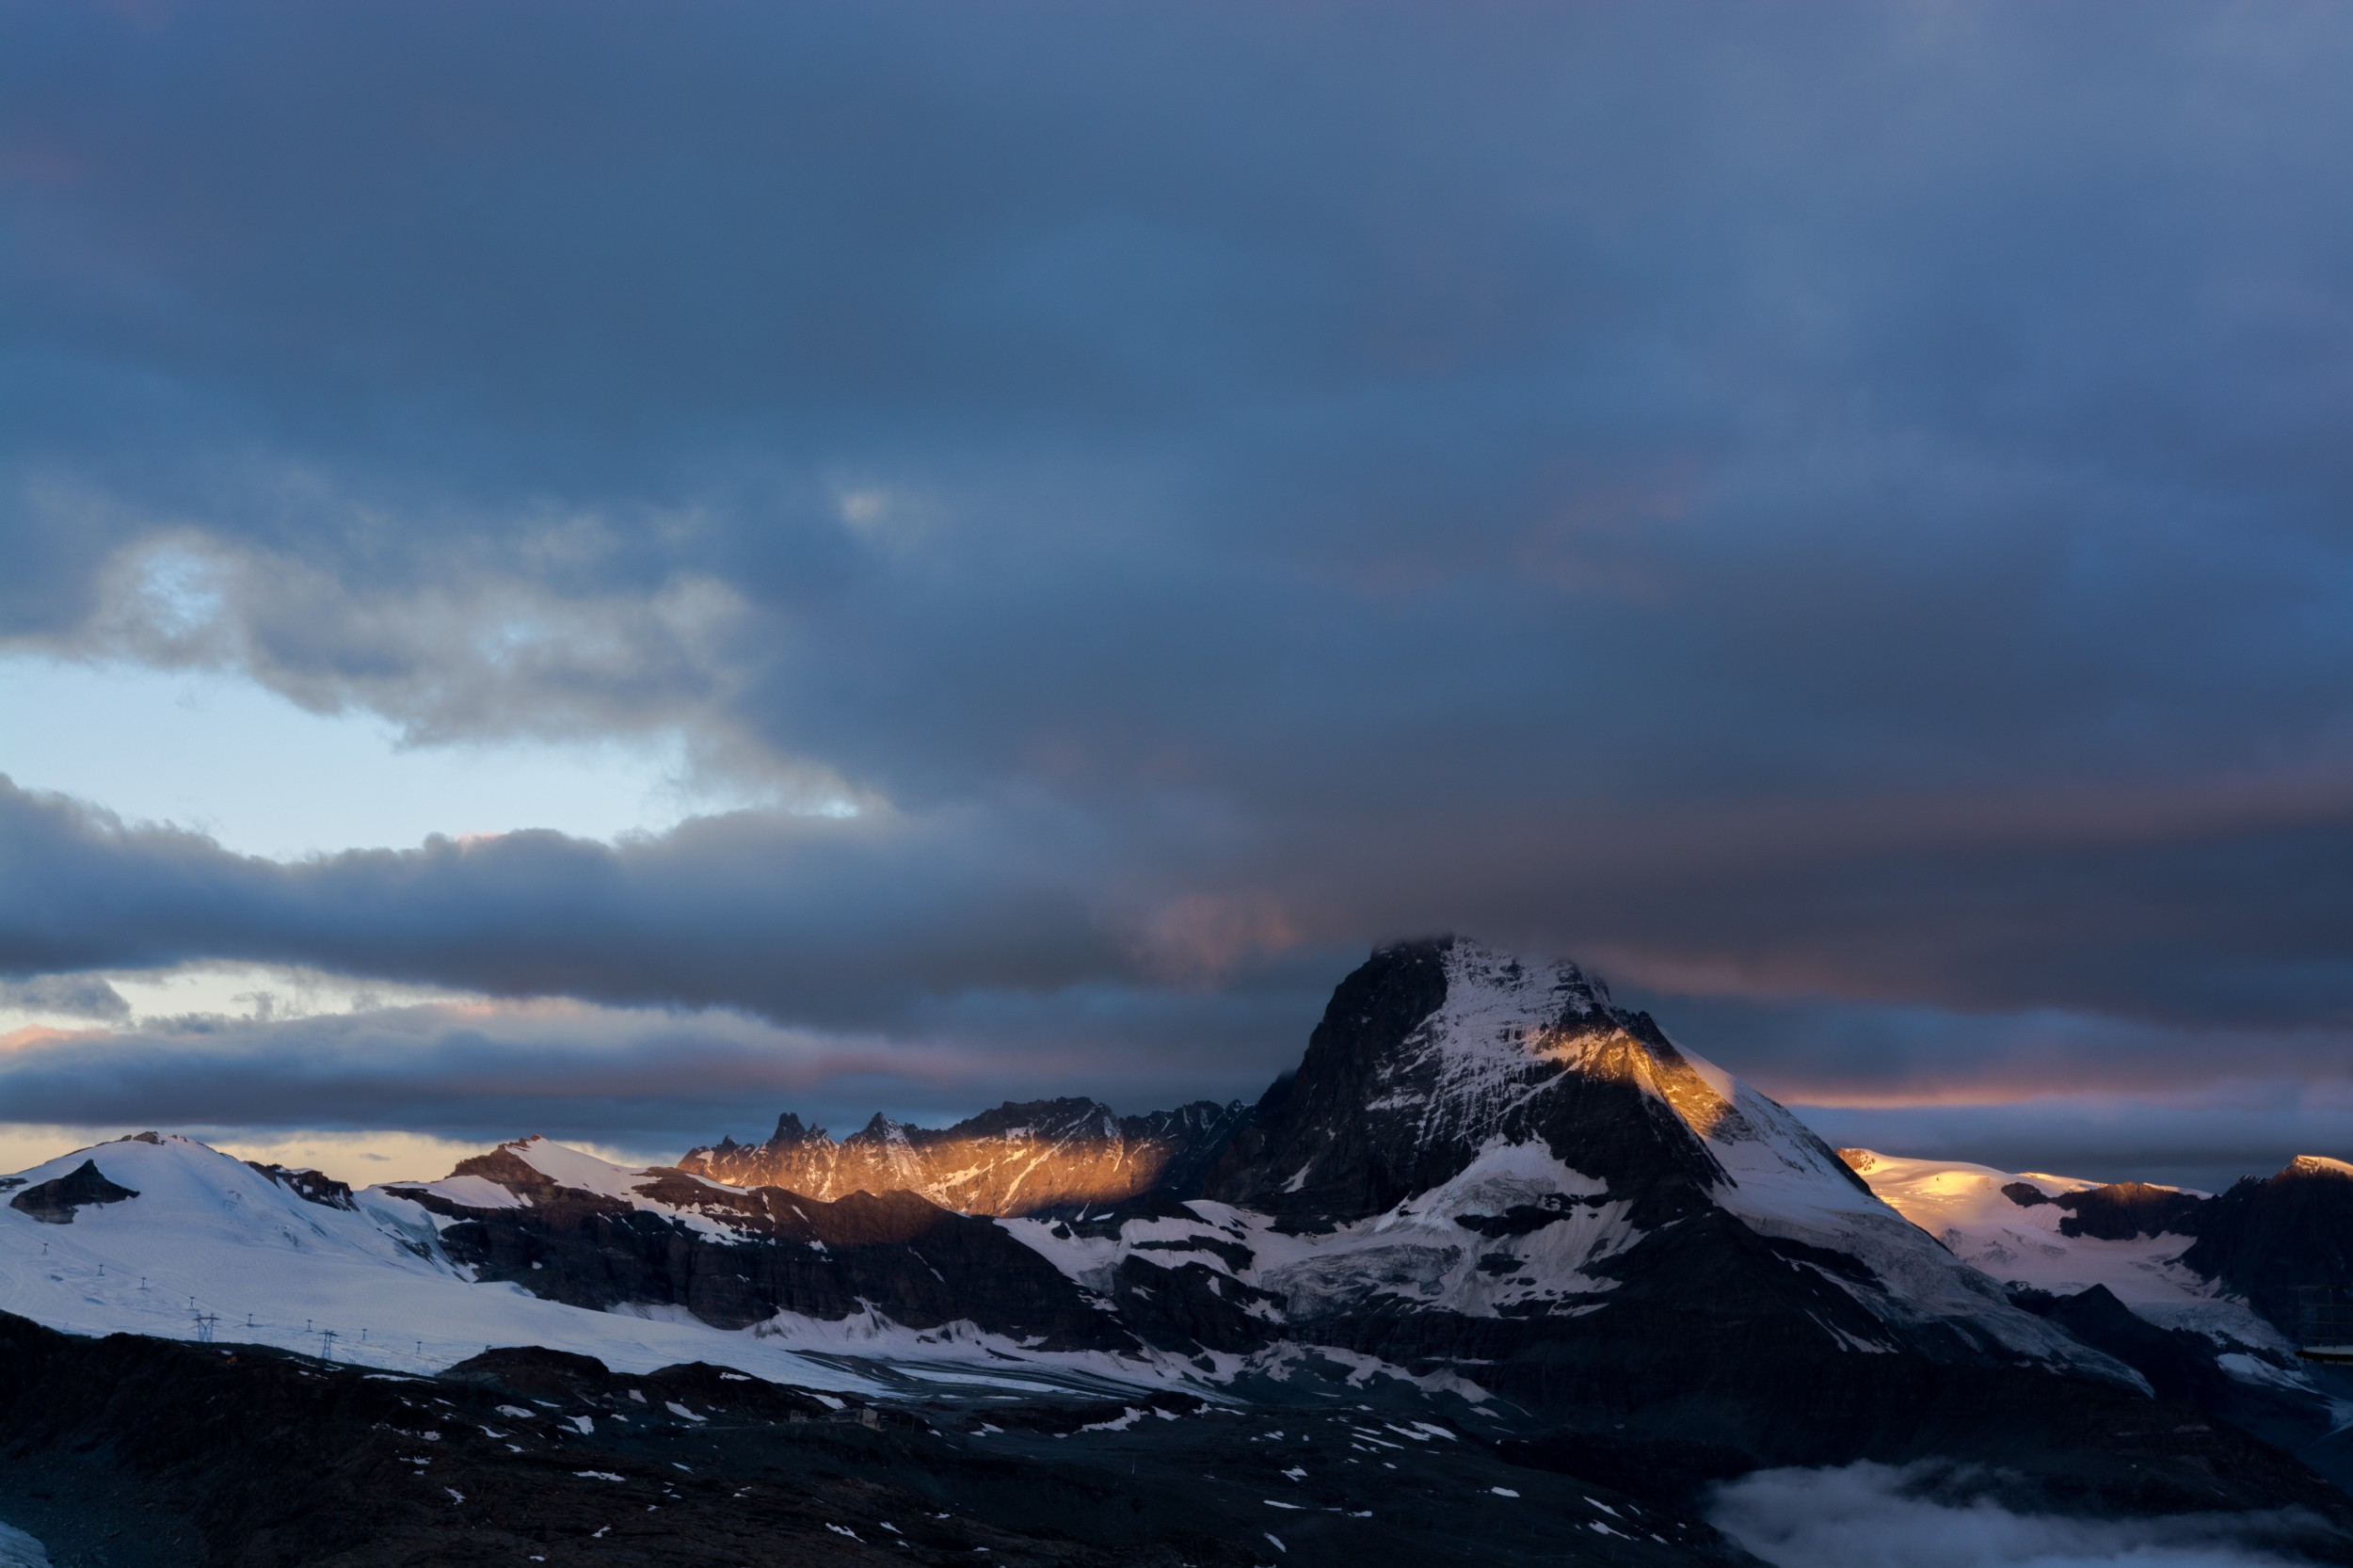 Sunrise at Matterhorn